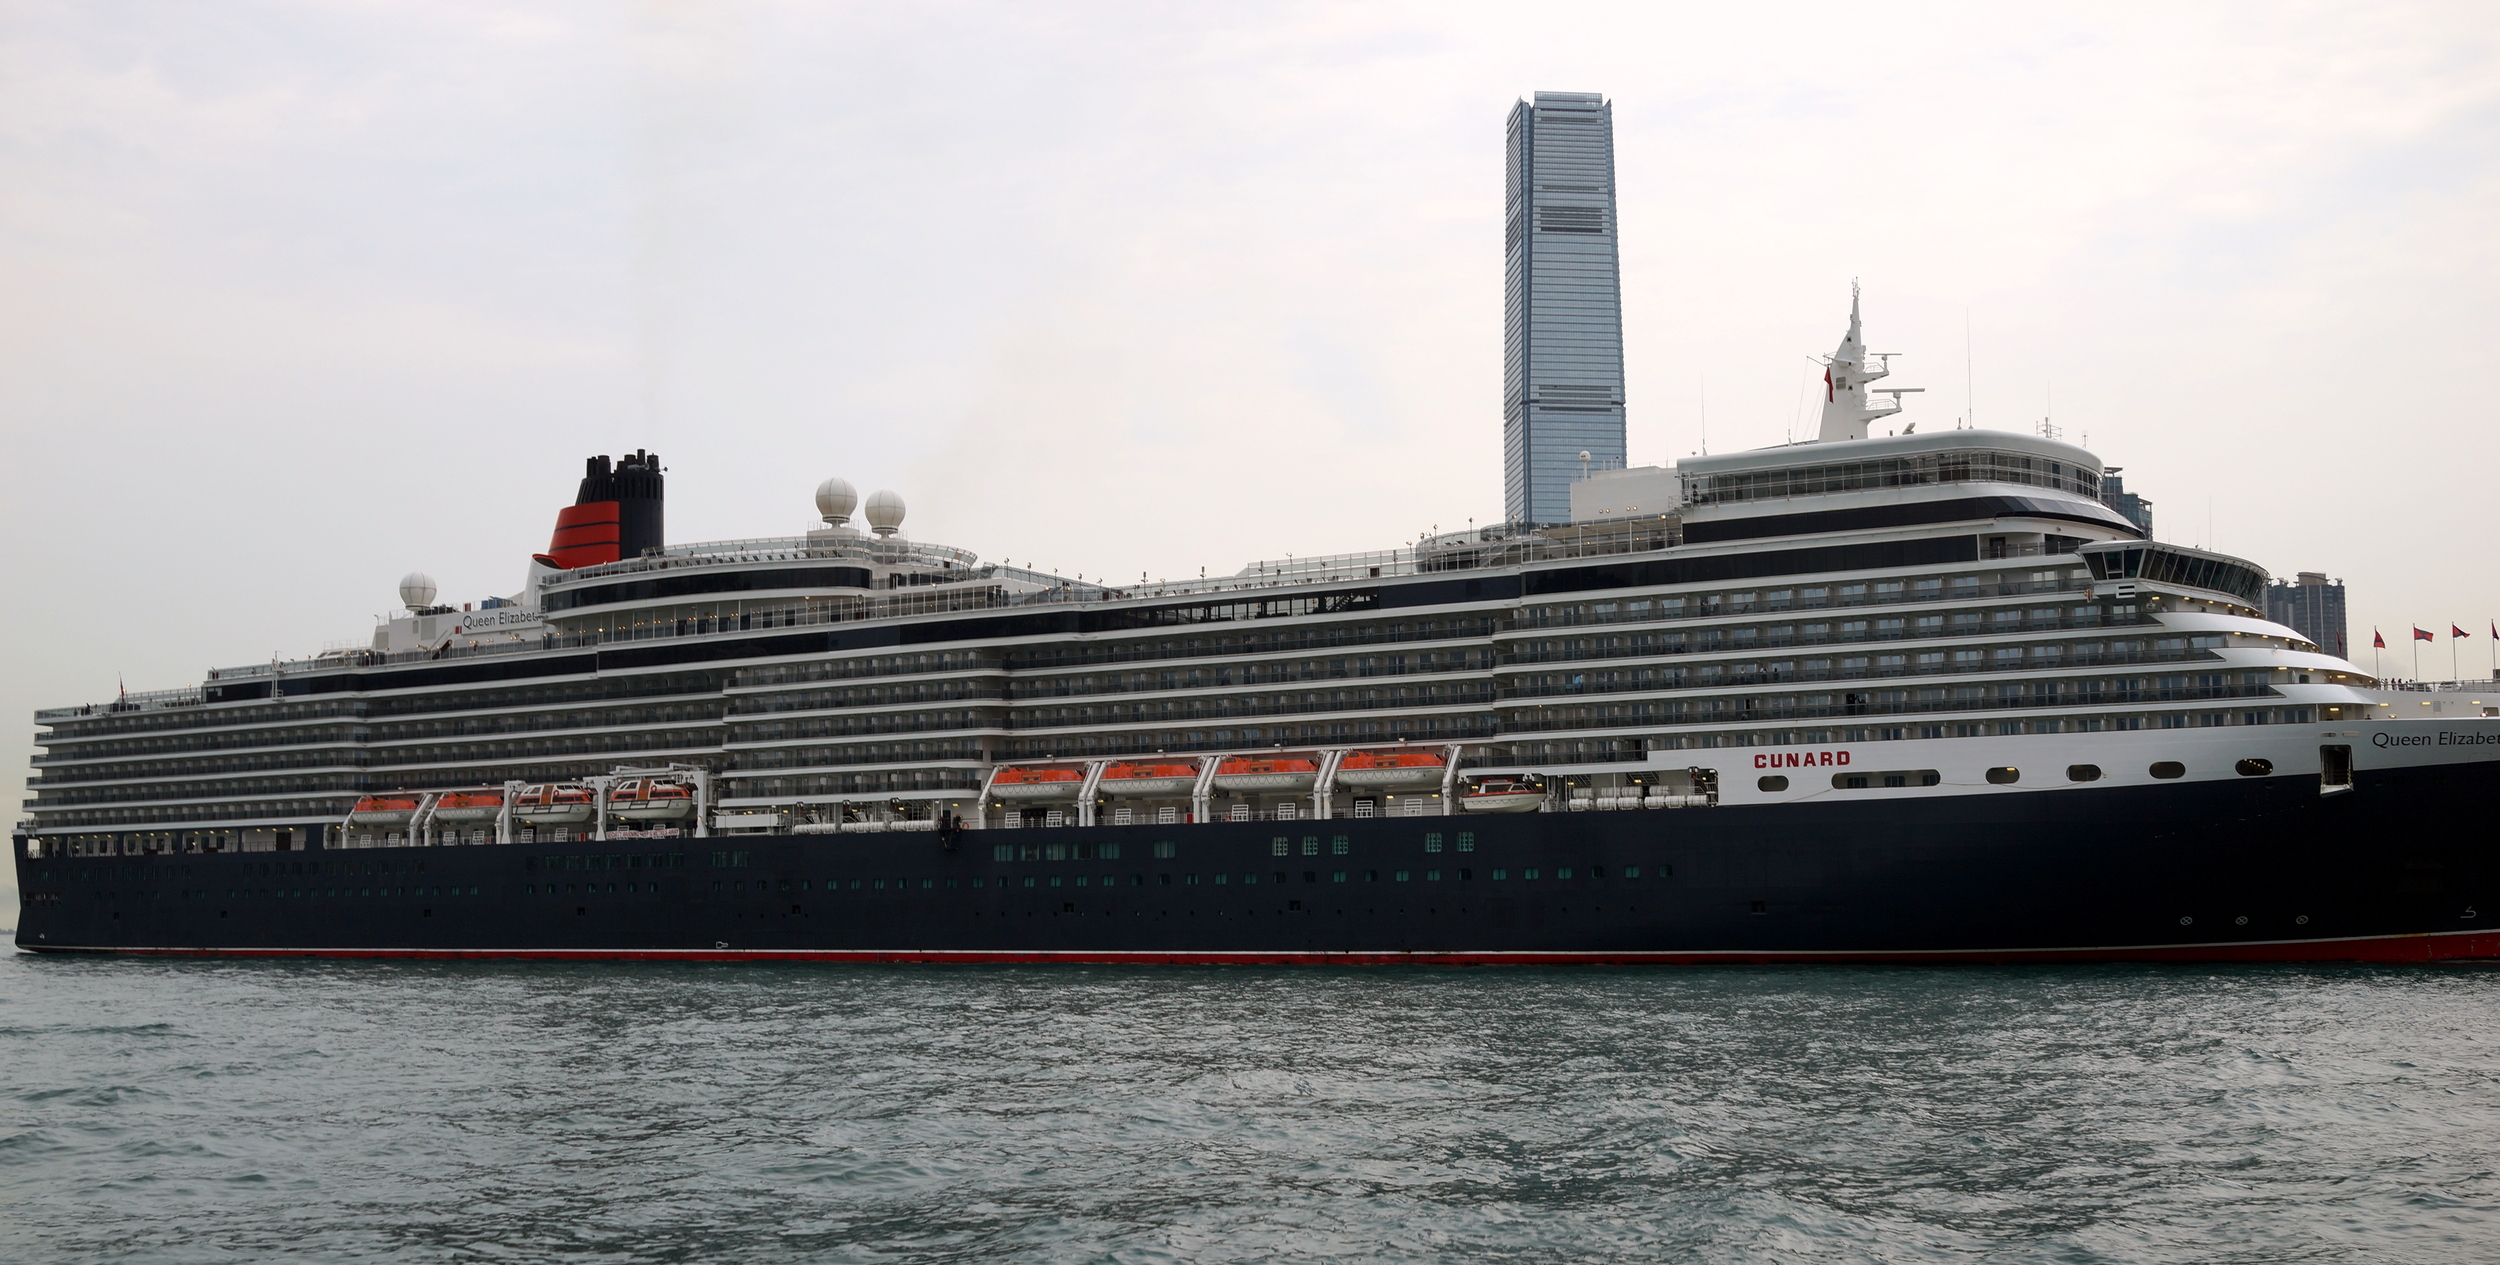 The very, very large / long Queen Elizabeth docked at the Ocean Terminal